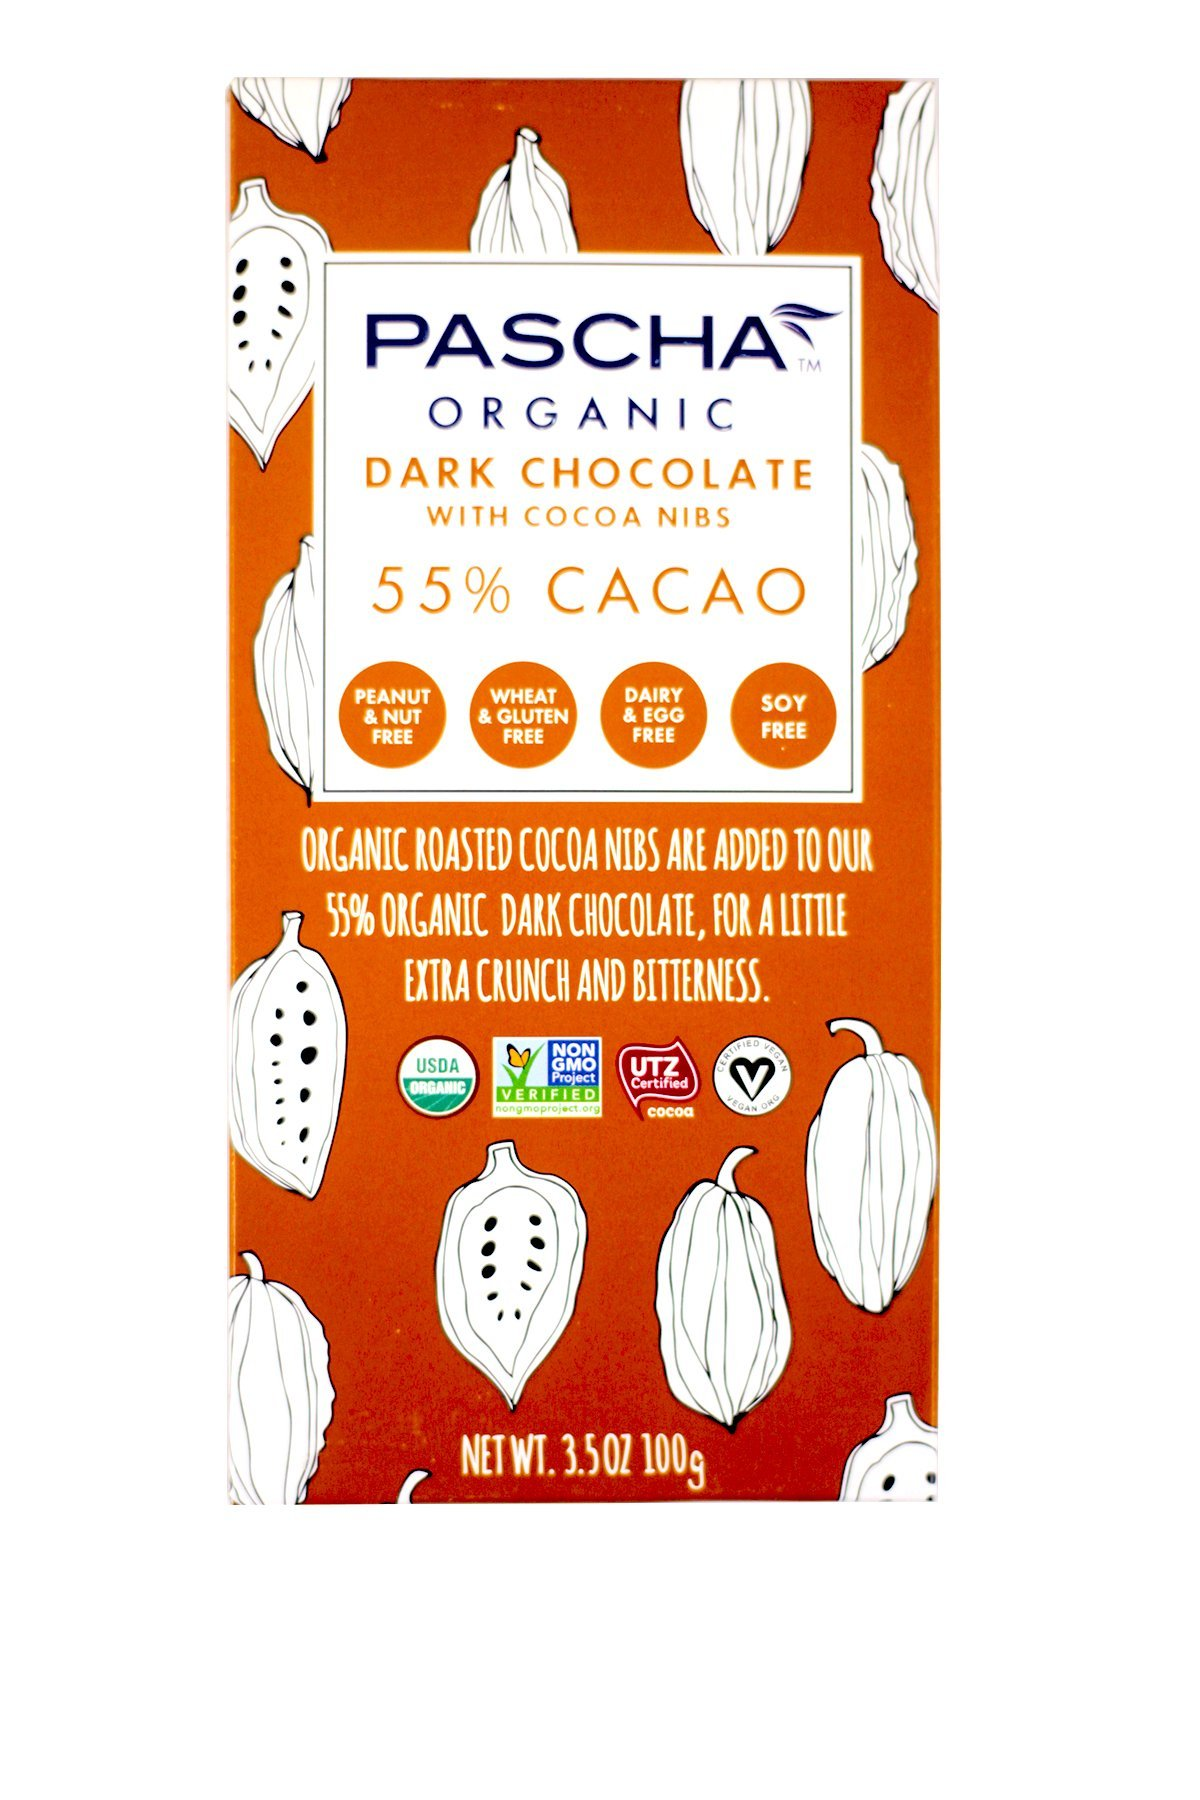 Pascha Organic Dark Chocolate with Cocoa Nibs, 55% Cacao, 3.5 Ounce